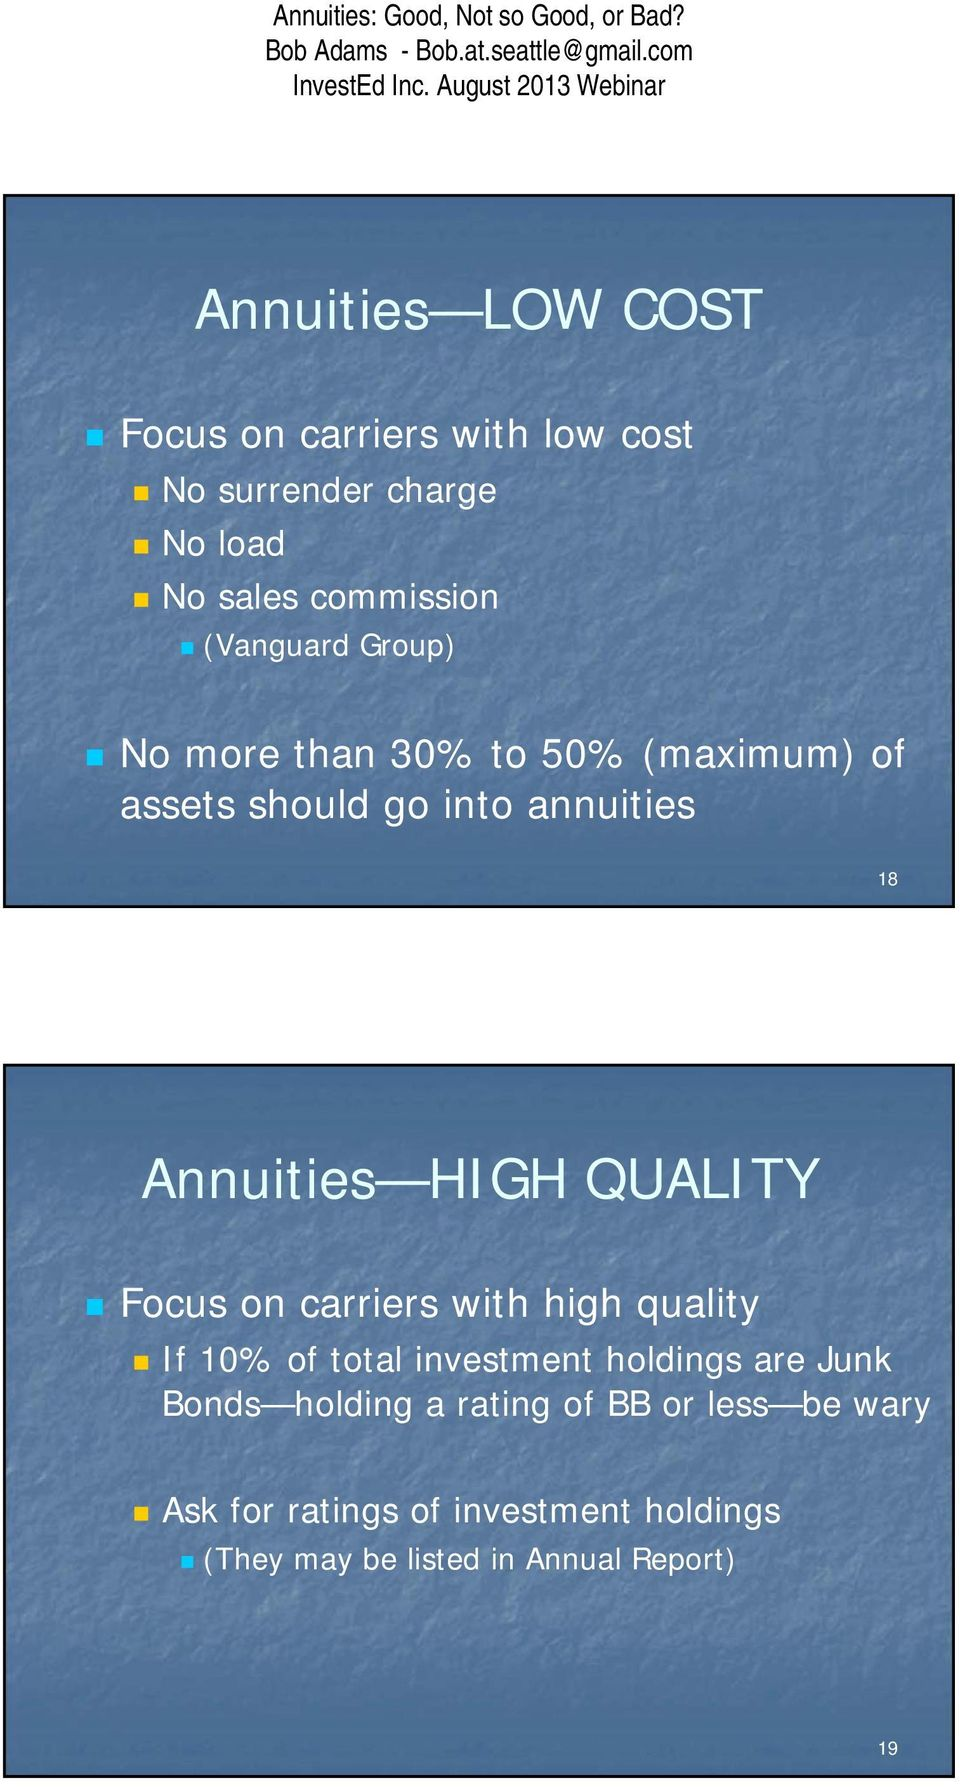 QUALITY Focus on carriers with high quality If 10% of total investment holdings are Junk Bonds holding